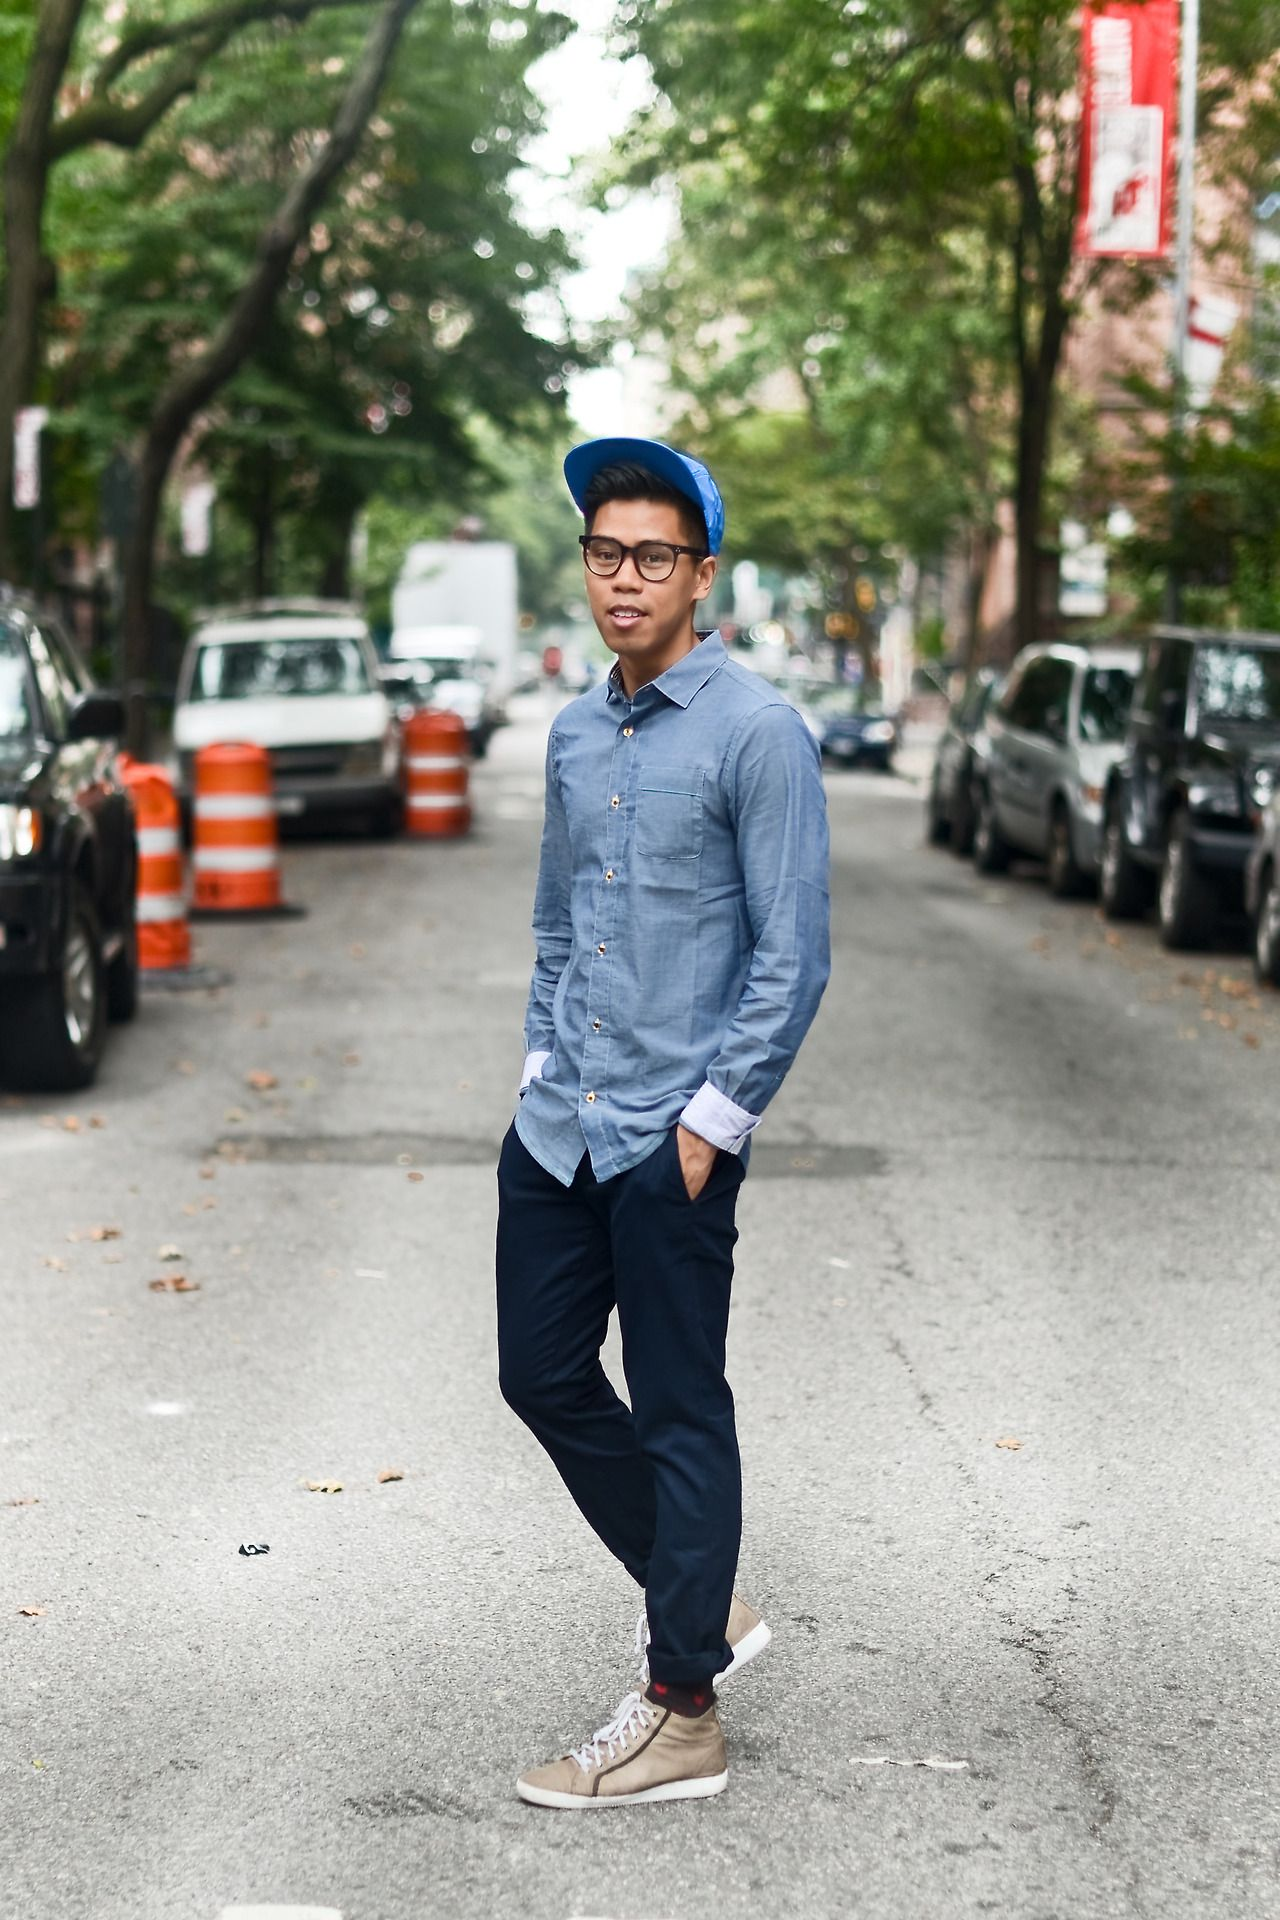 Outfit: Men's Casual Outfit He Was A Skater Boi - See the ...